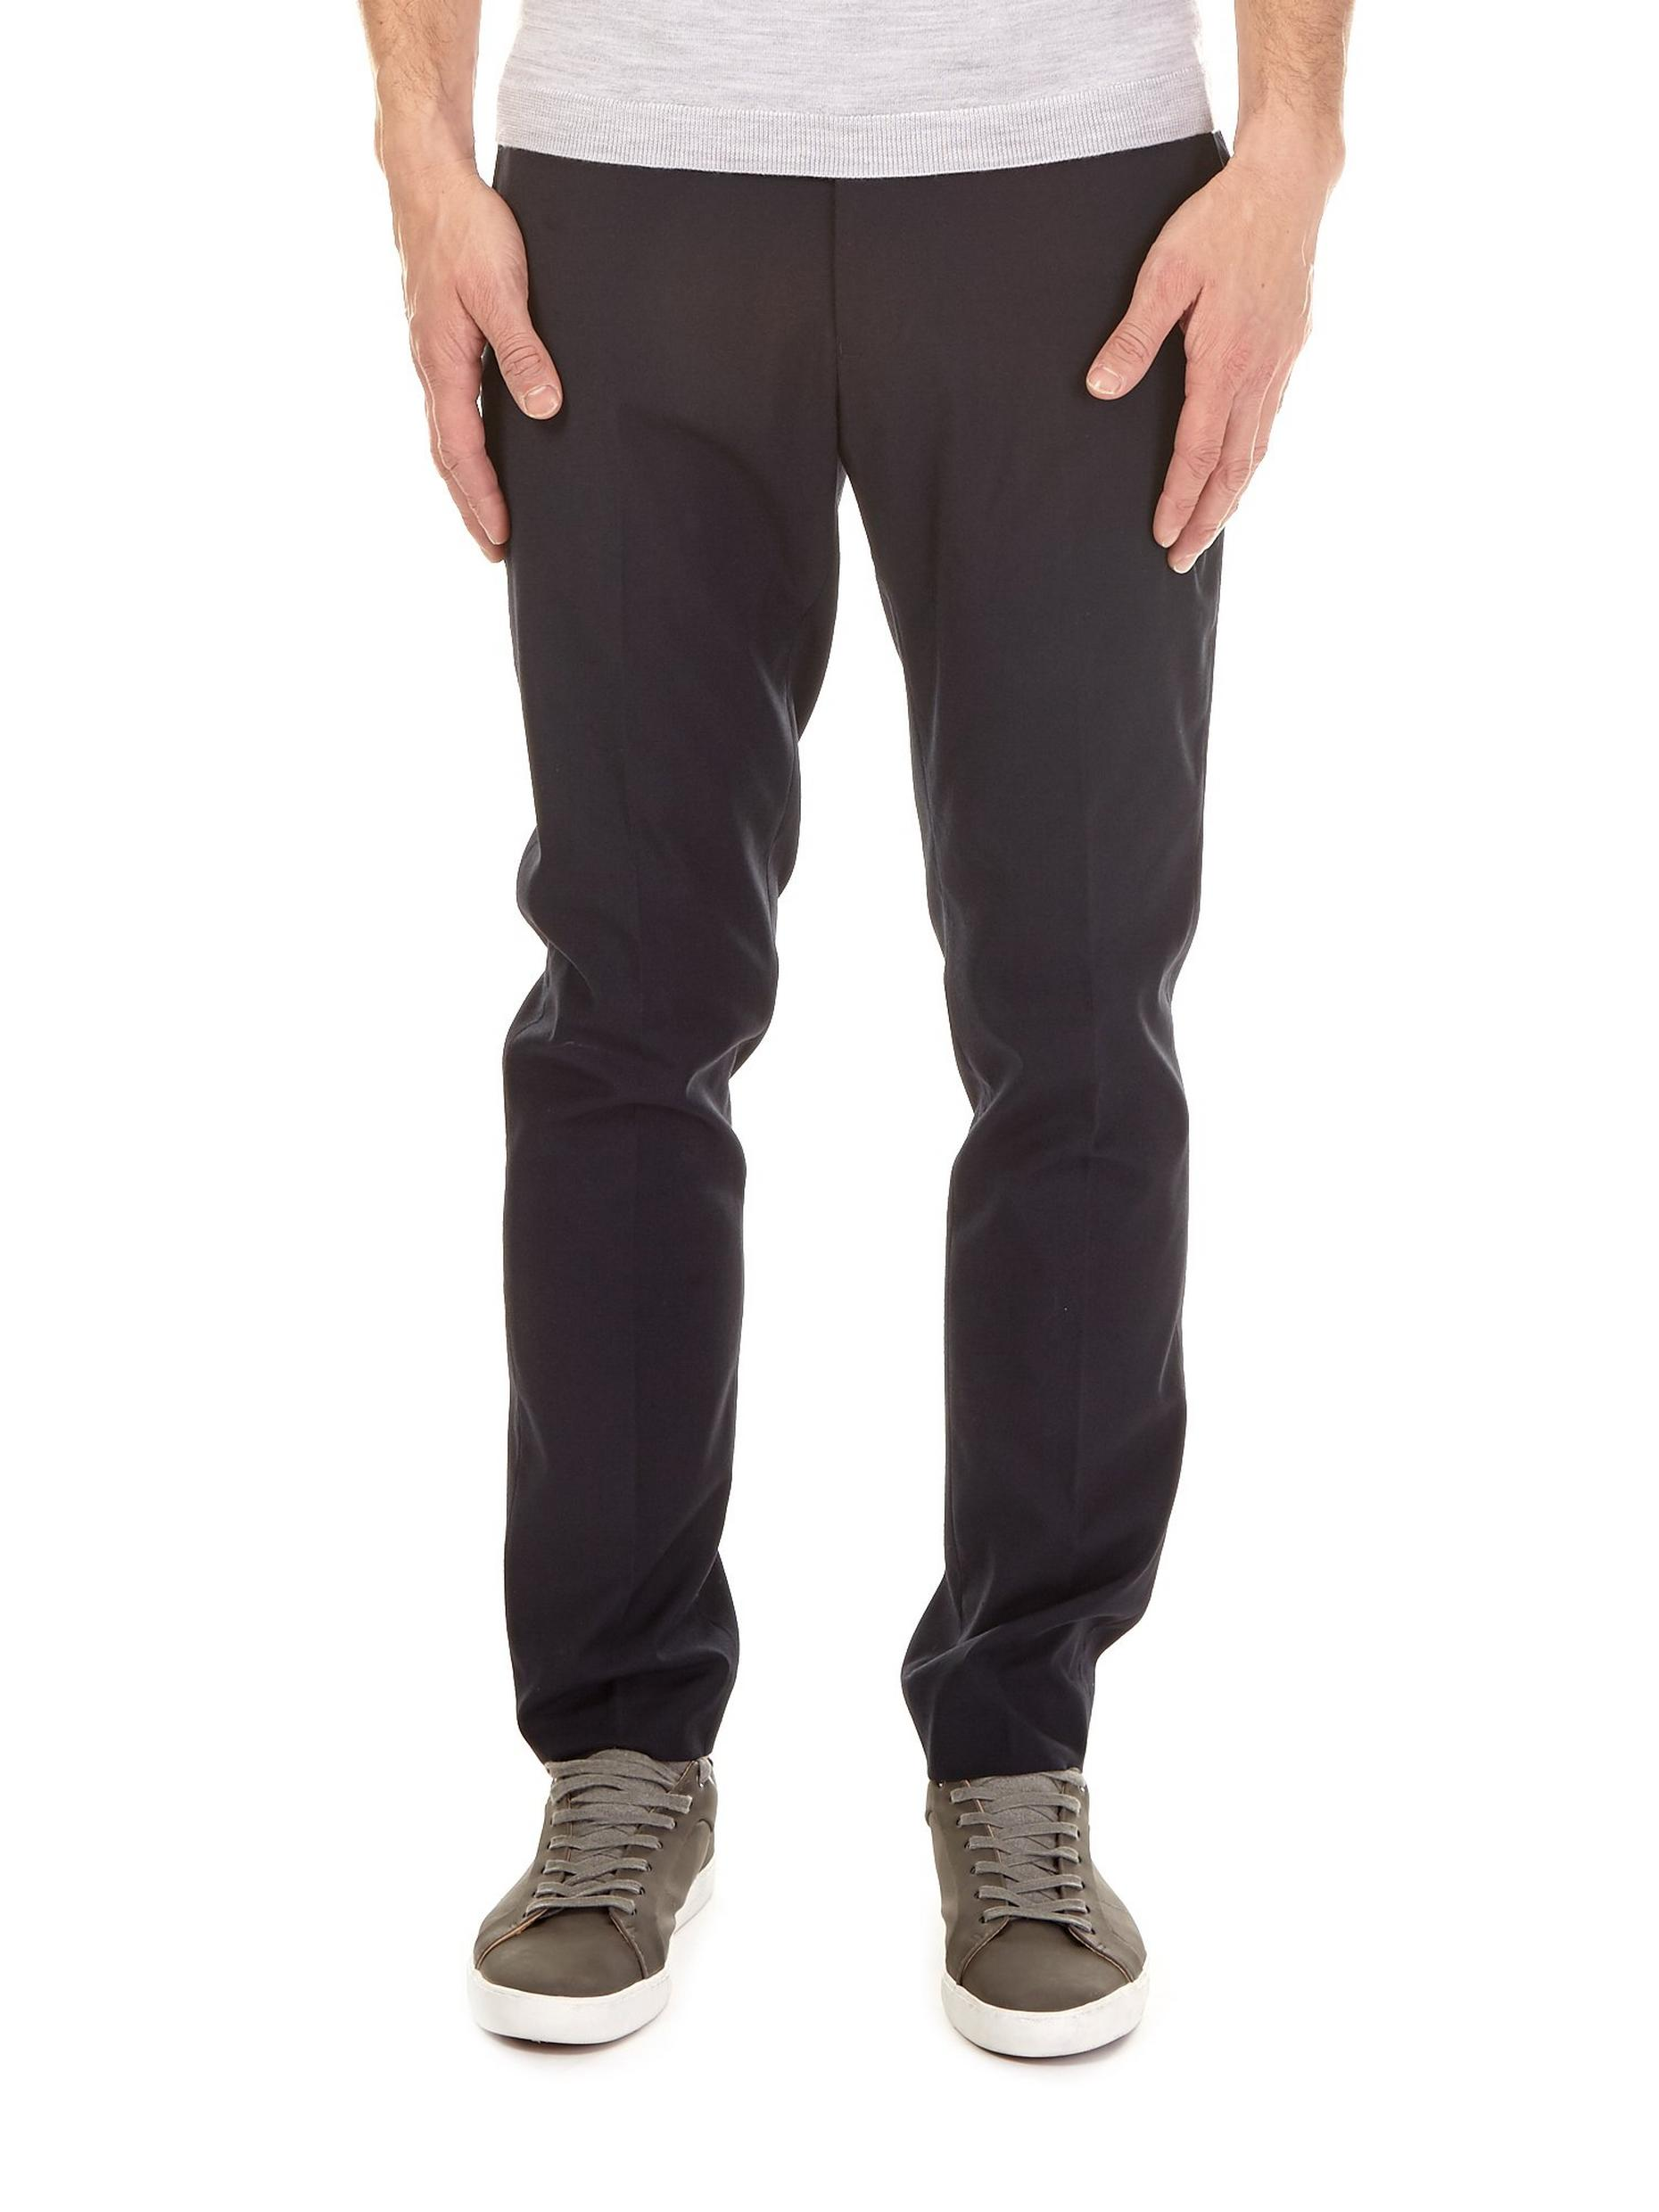 Navy Skinny Fit Stretch Trousers